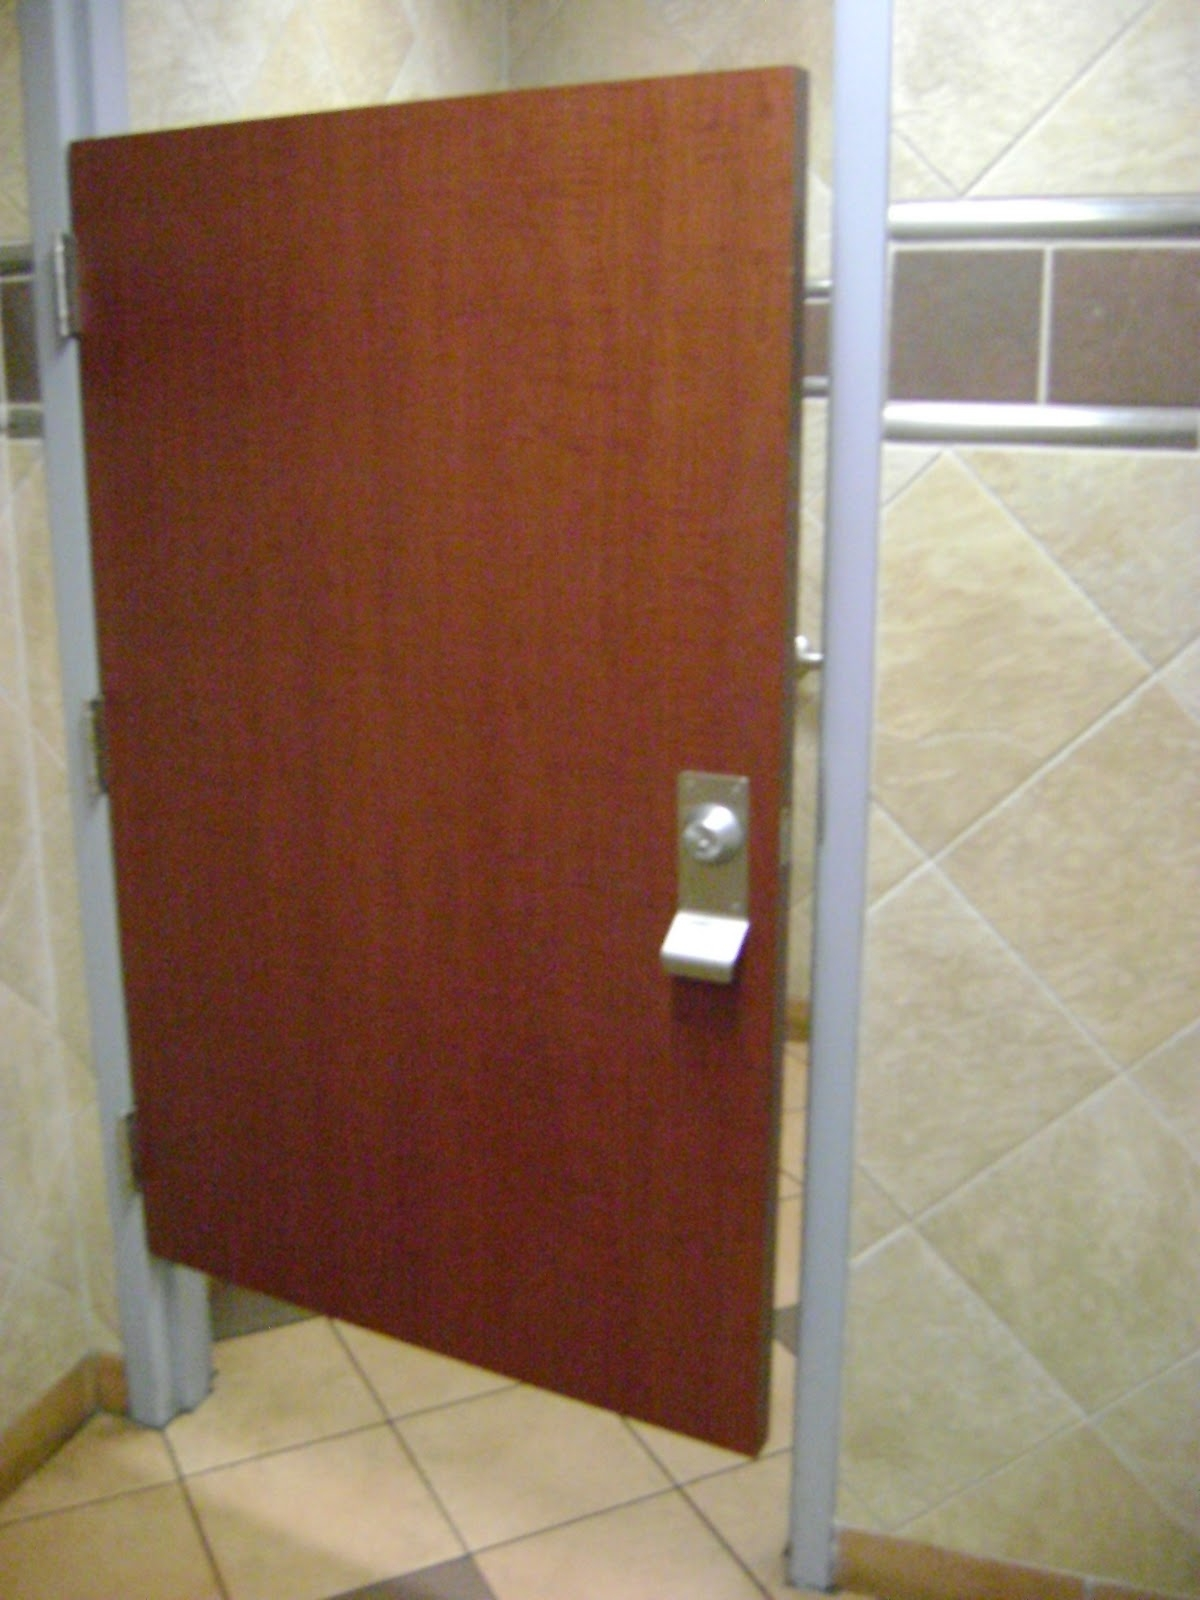 Permalink to Bathroom Stall Door Hardware